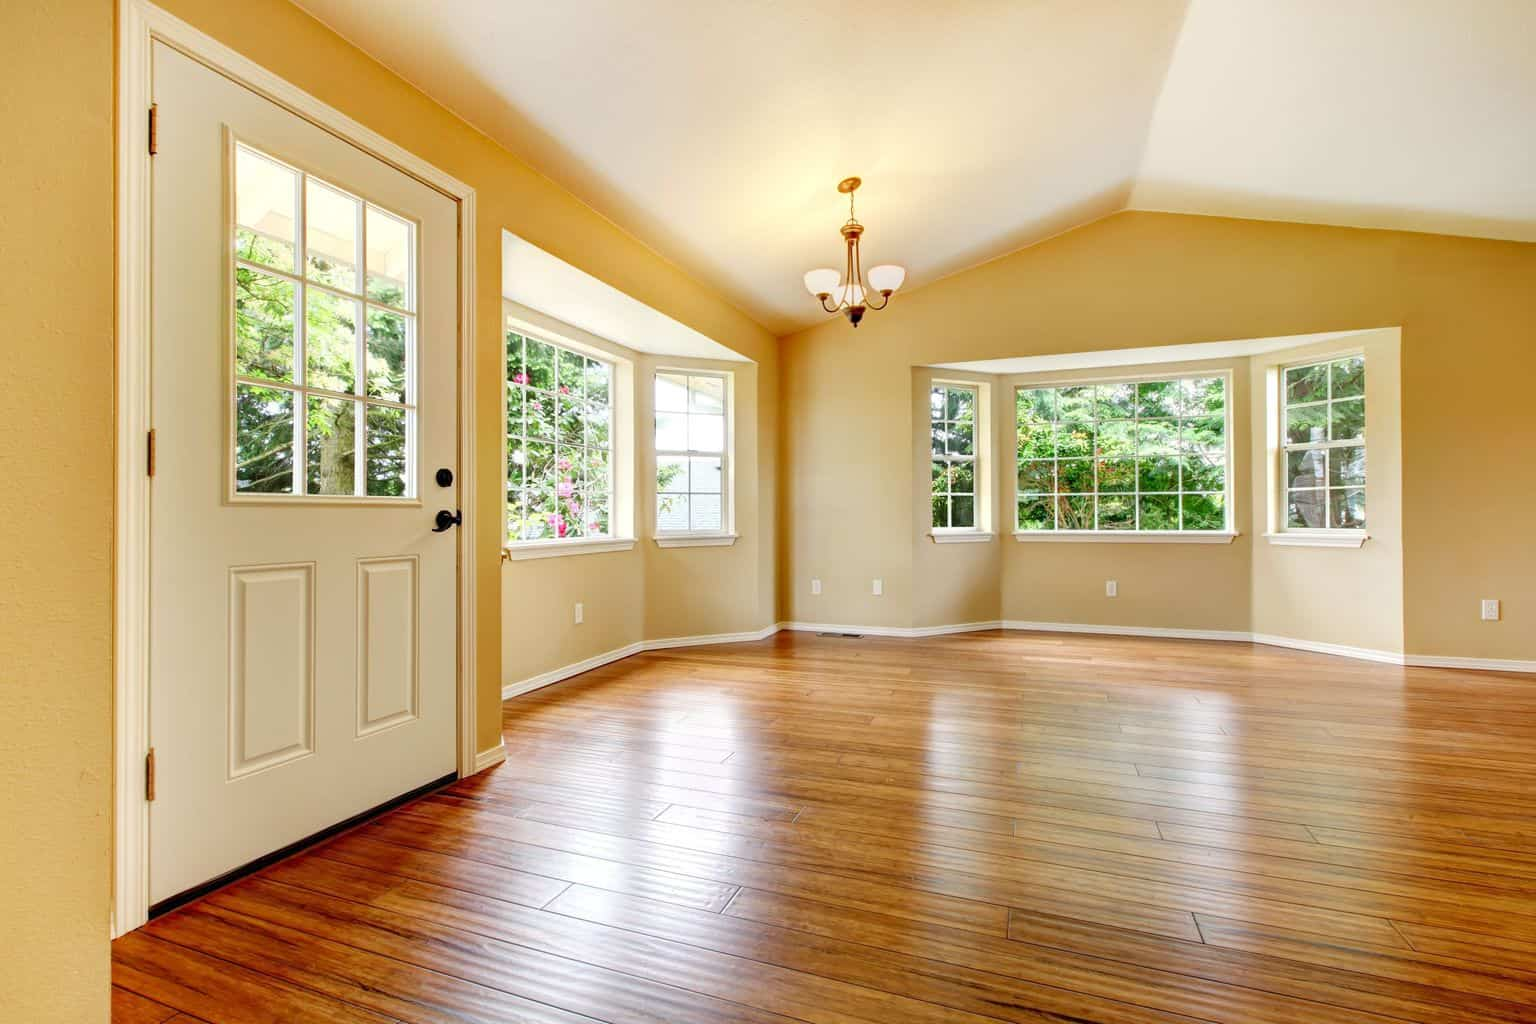 ... Type Of Flooring, But The Price Of Selecting Floating Engineered  Flooring Can Offer You As Well, Which Can Help Increase The Appeal Of This  Type Of ...